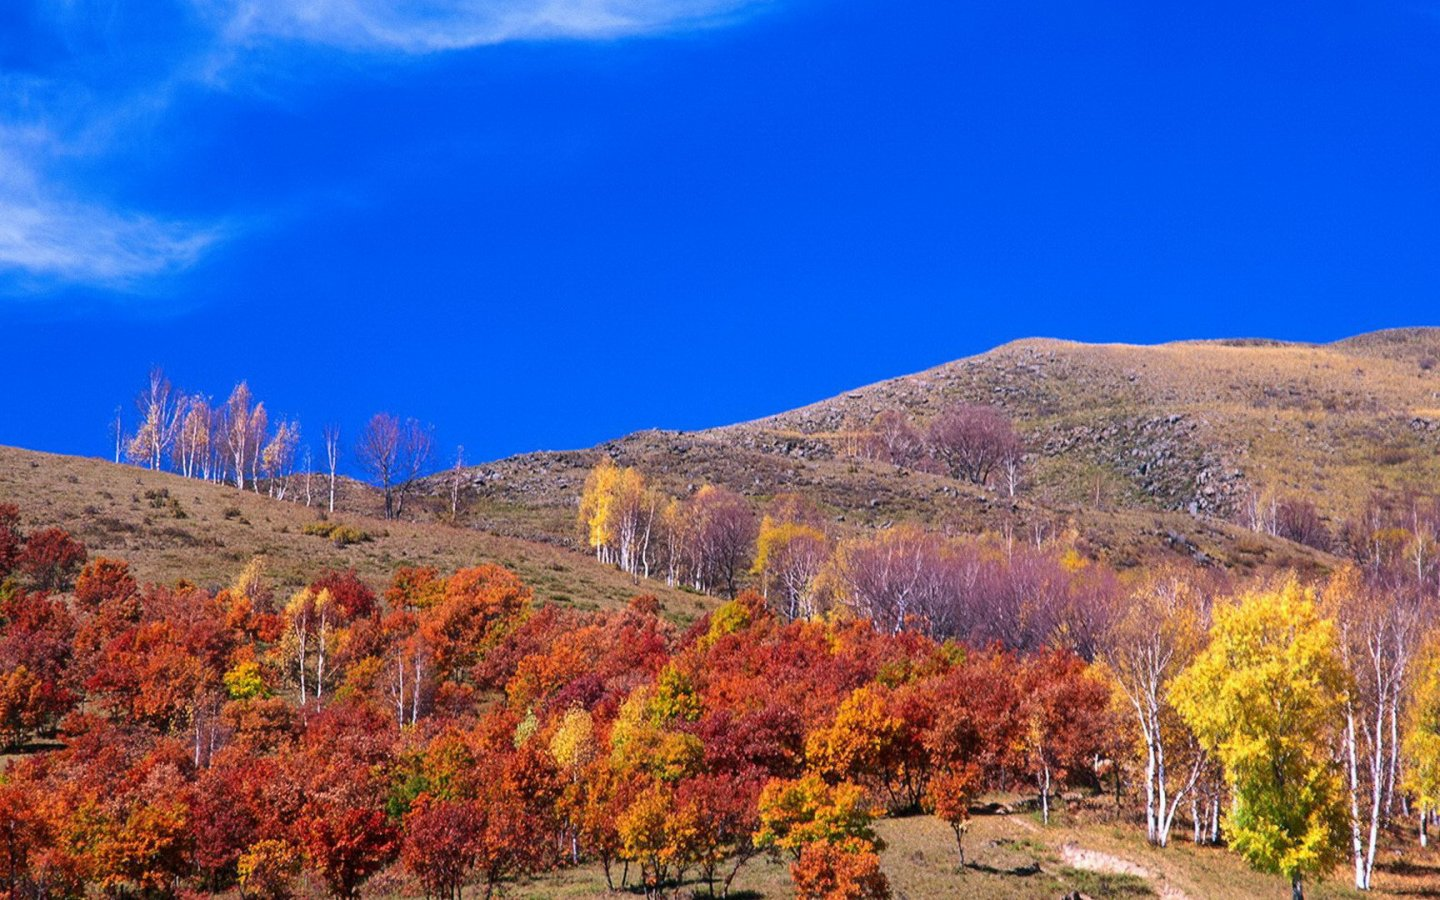 Tree Forest Autumn Yellow Leaf Red Leaf Mountain Hillside